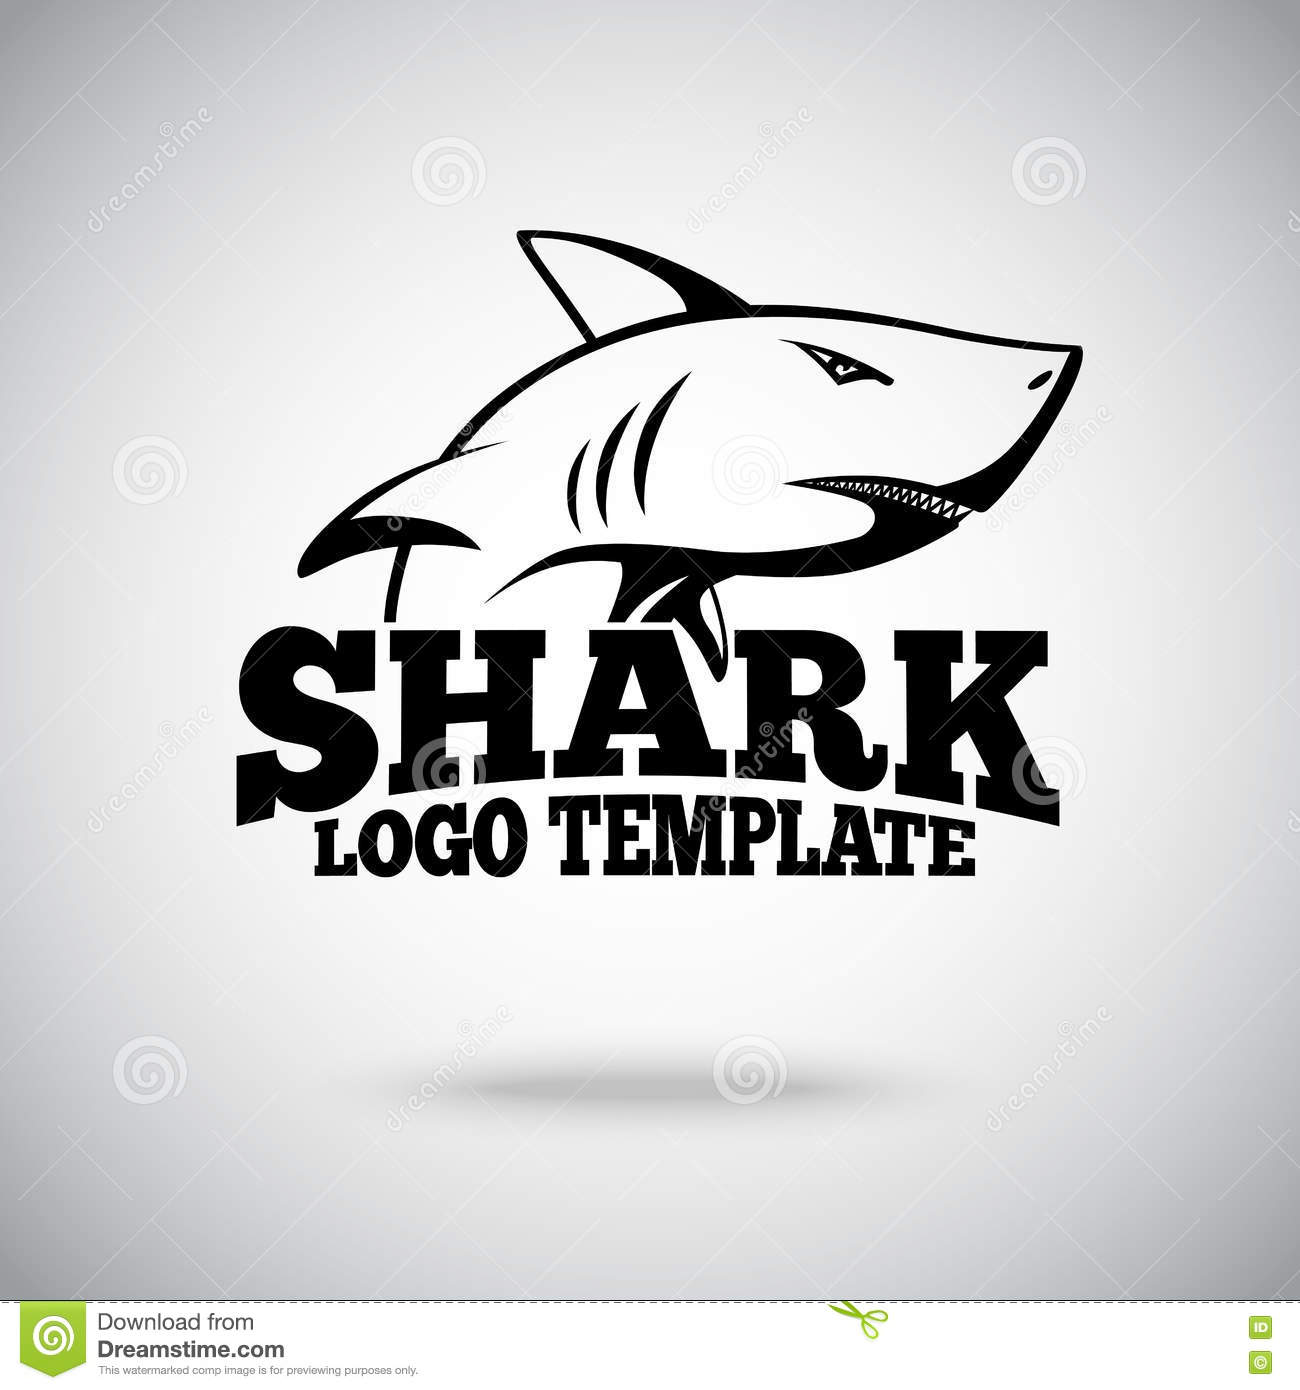 Cool 010 Editor Templates Huge 1 Inch Hexagon Template Solid 10 Envelope Template Illustrator 100 Day Glasses Template Youthful 100th Day Hat Template Black1096 Template Template Of The Logo With Shark. Sport Team Mascot. Sport Club O ..